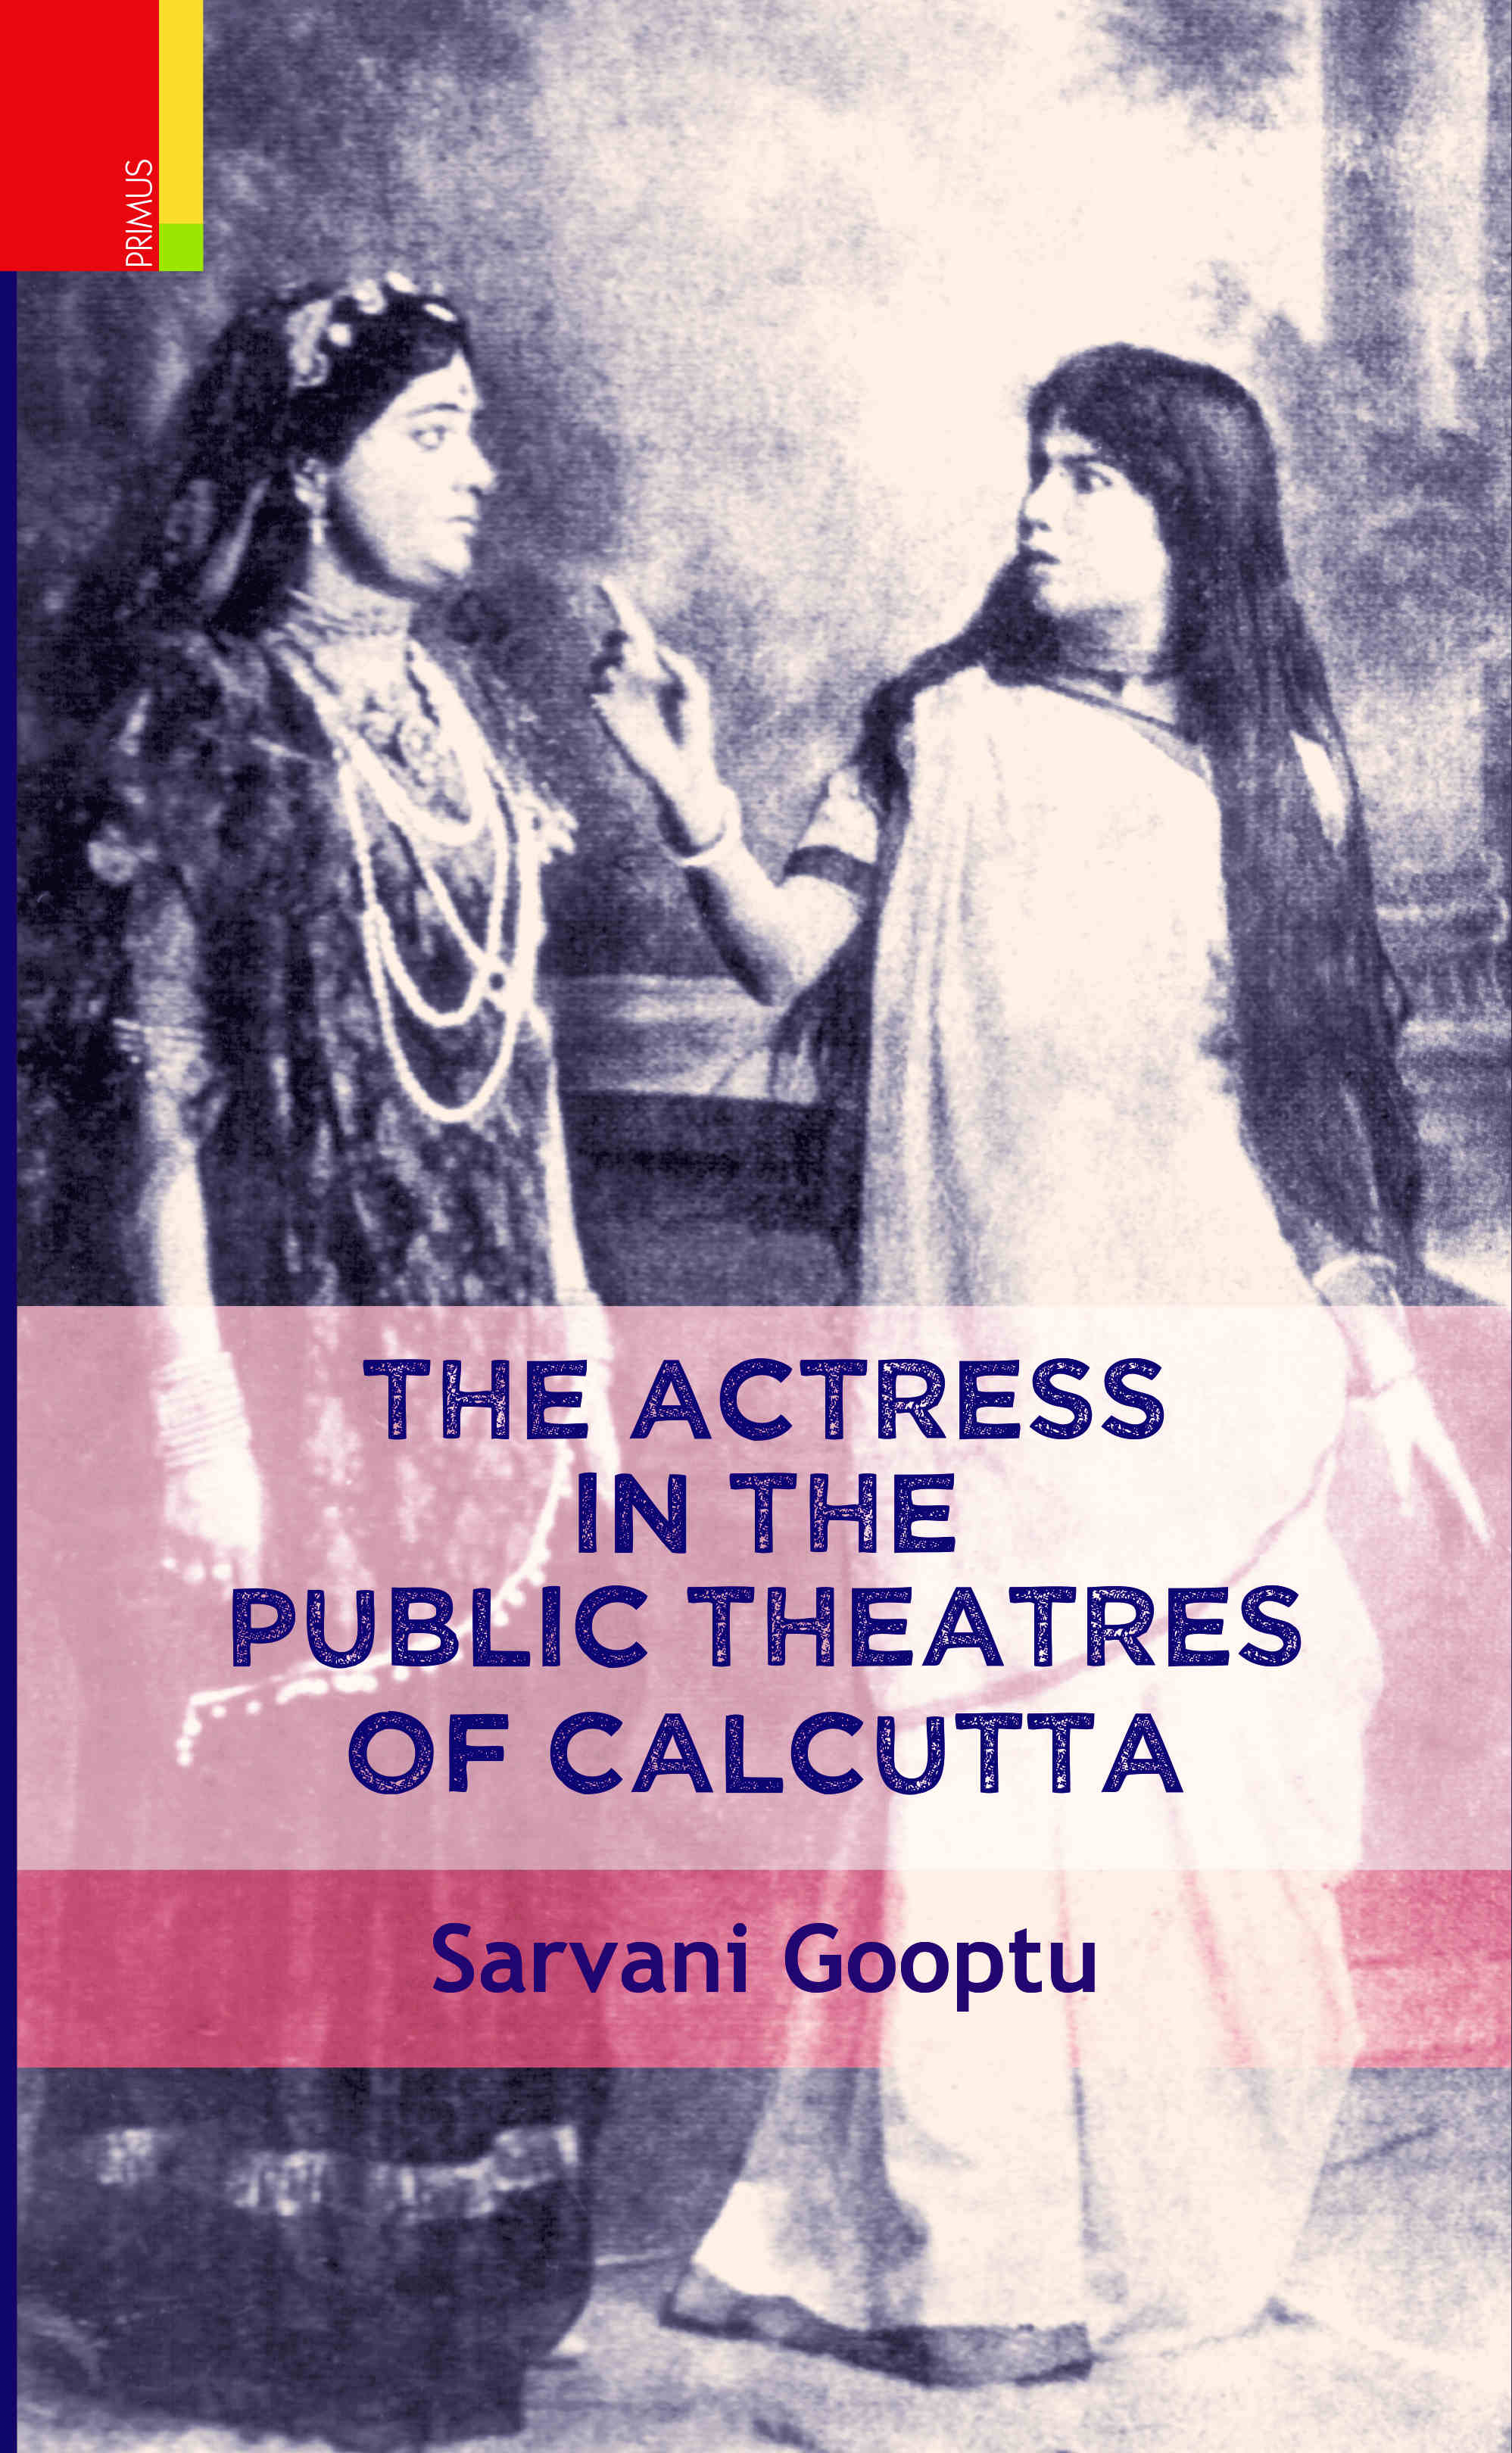 The Actress in the Public Theatres of Calcutta